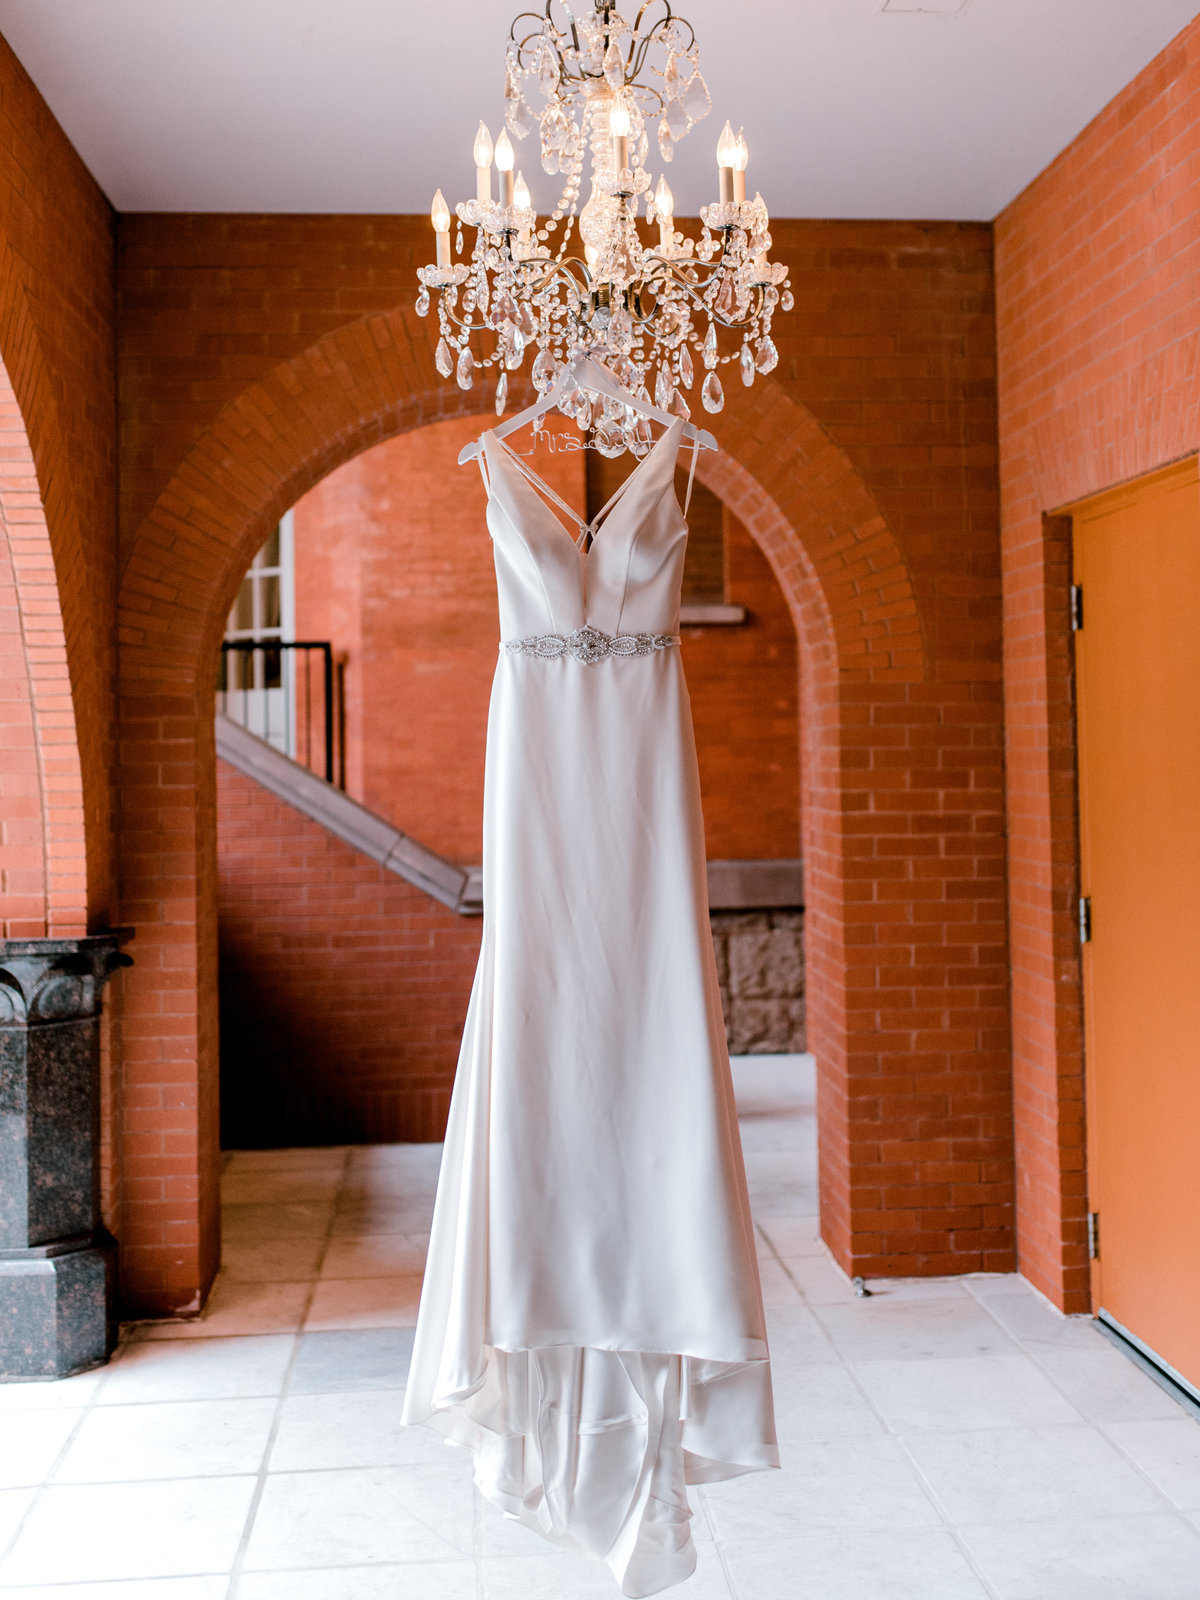 The White Magnolia Bridal Gown The Mansion Savannah